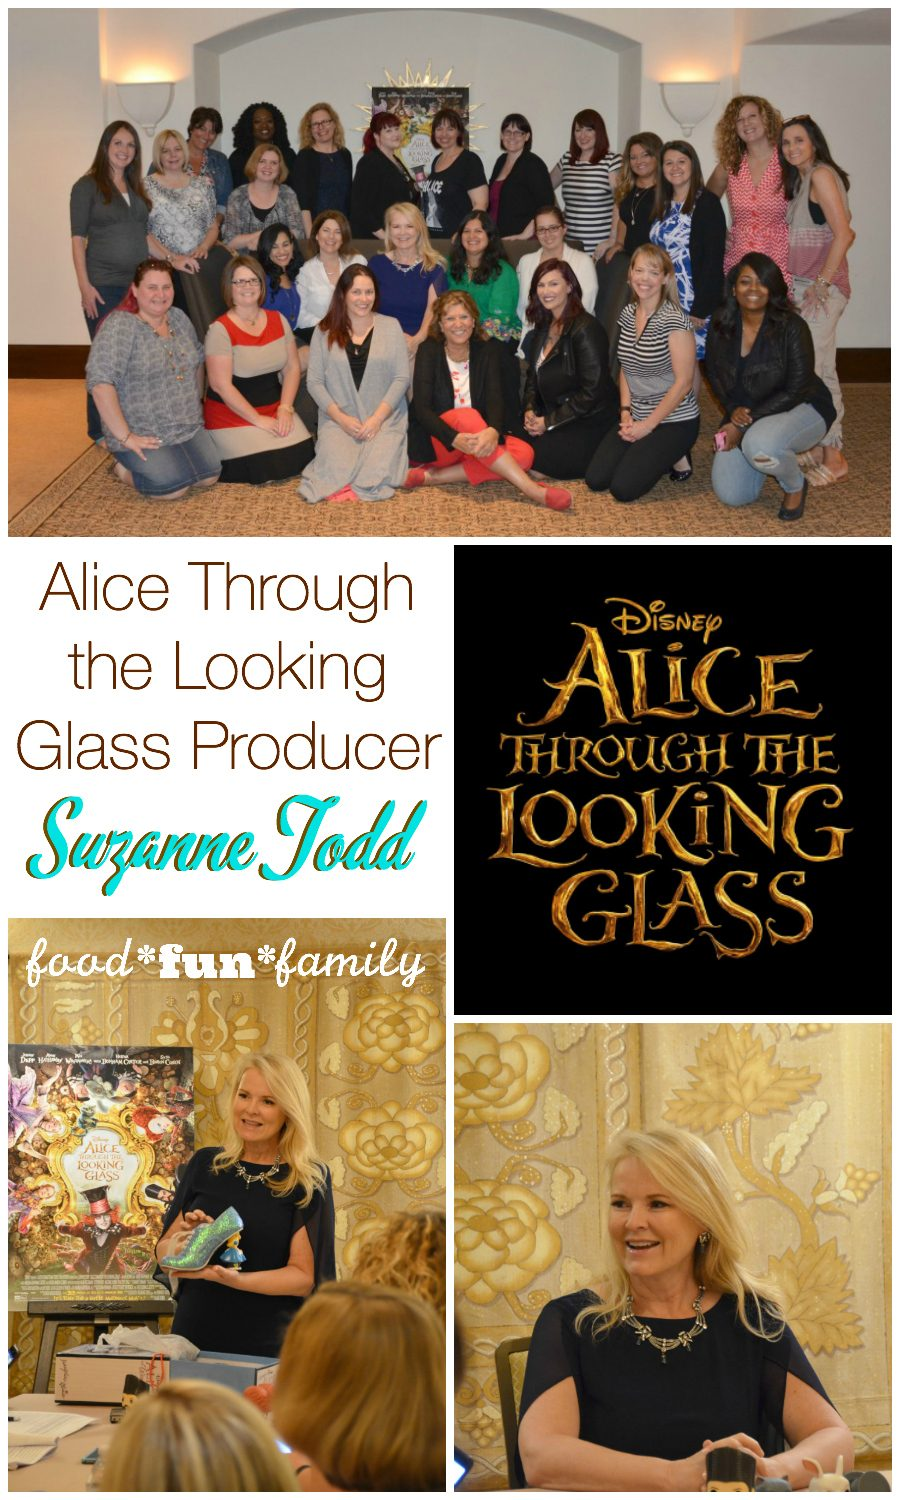 Alice Through the Looking Glass Producer Suzanne Todd on motherhood, shoes, time, and her newest Disney movie